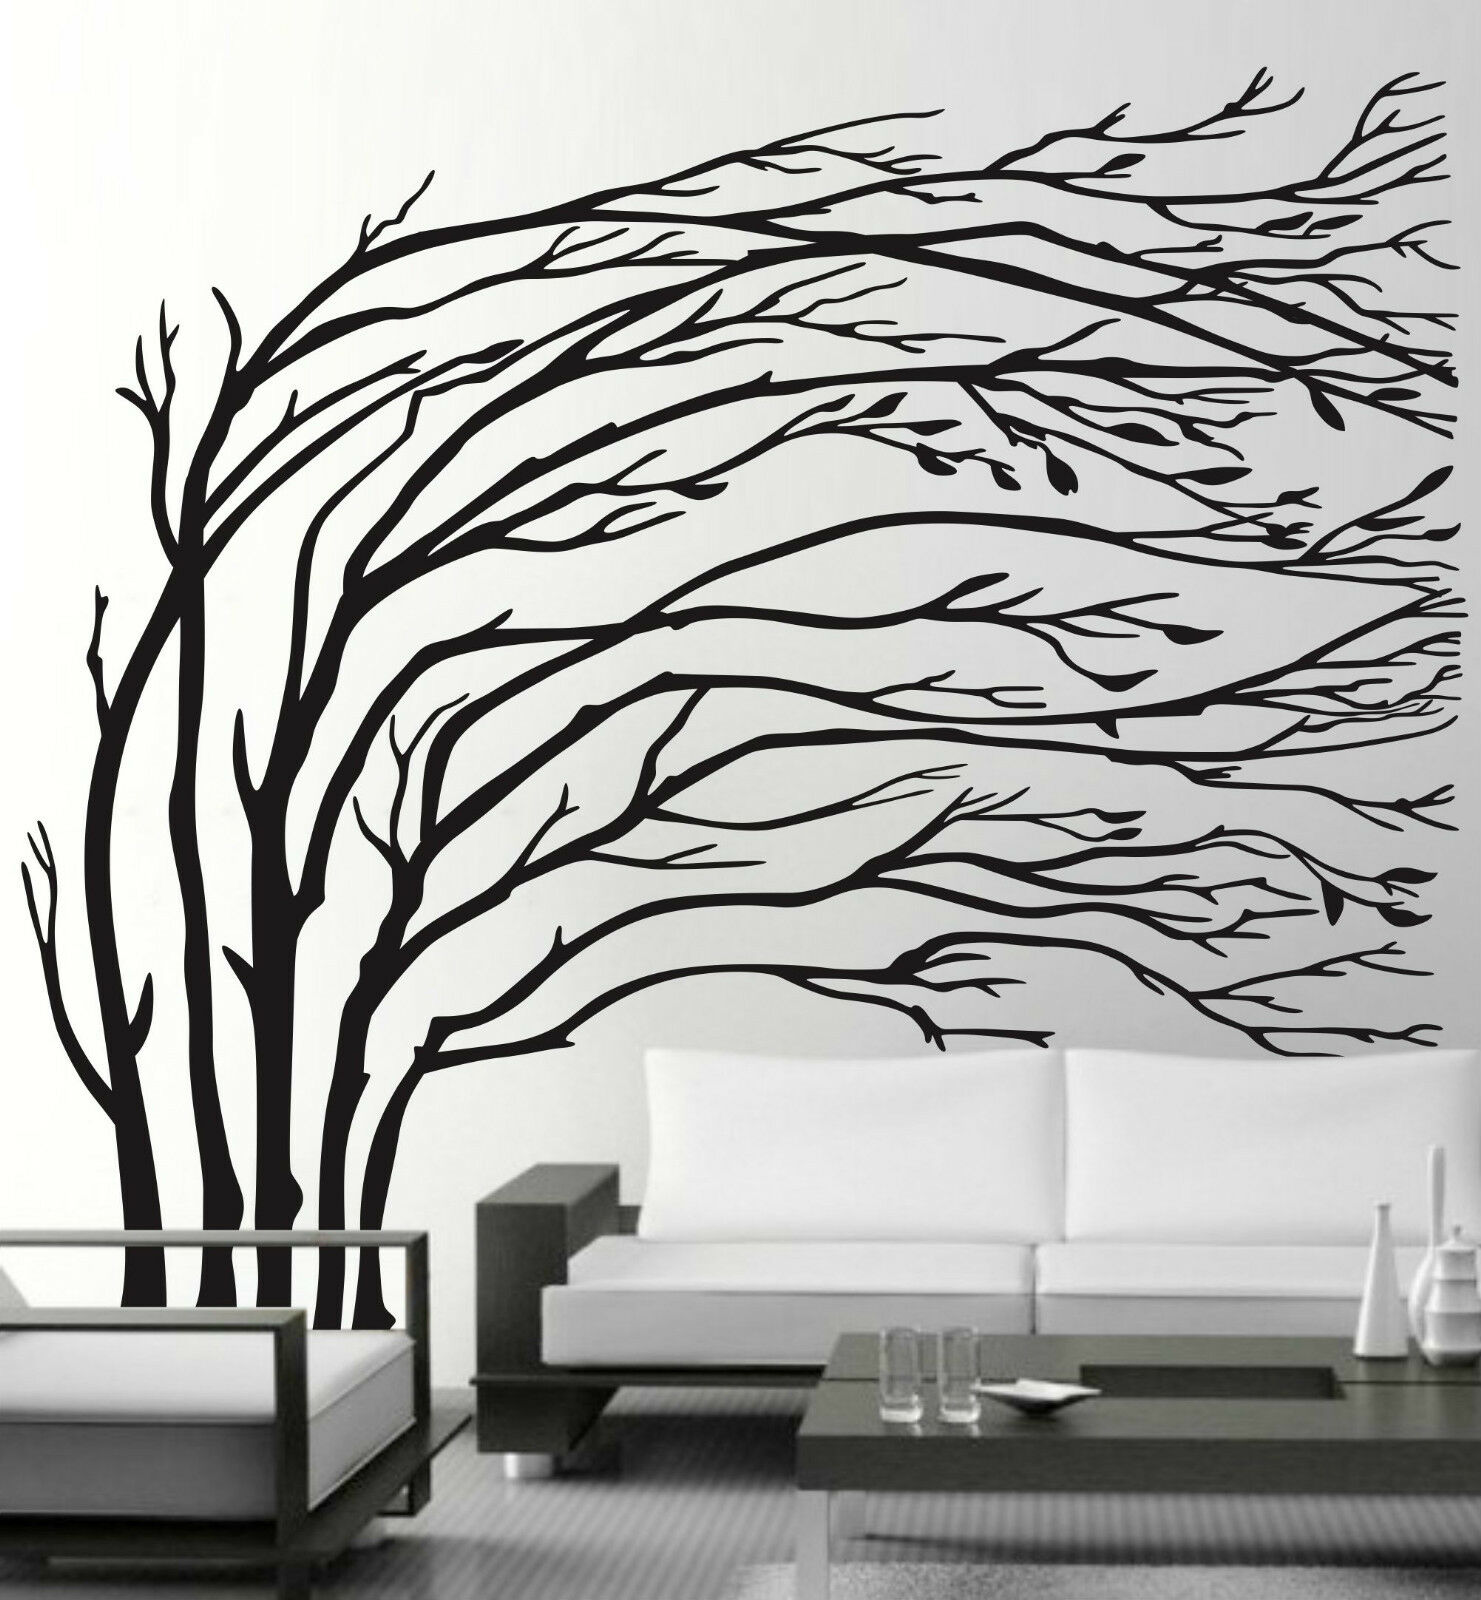 Large Blowing Tree Wall Stickers Vinyl Decal Removable Home Decor